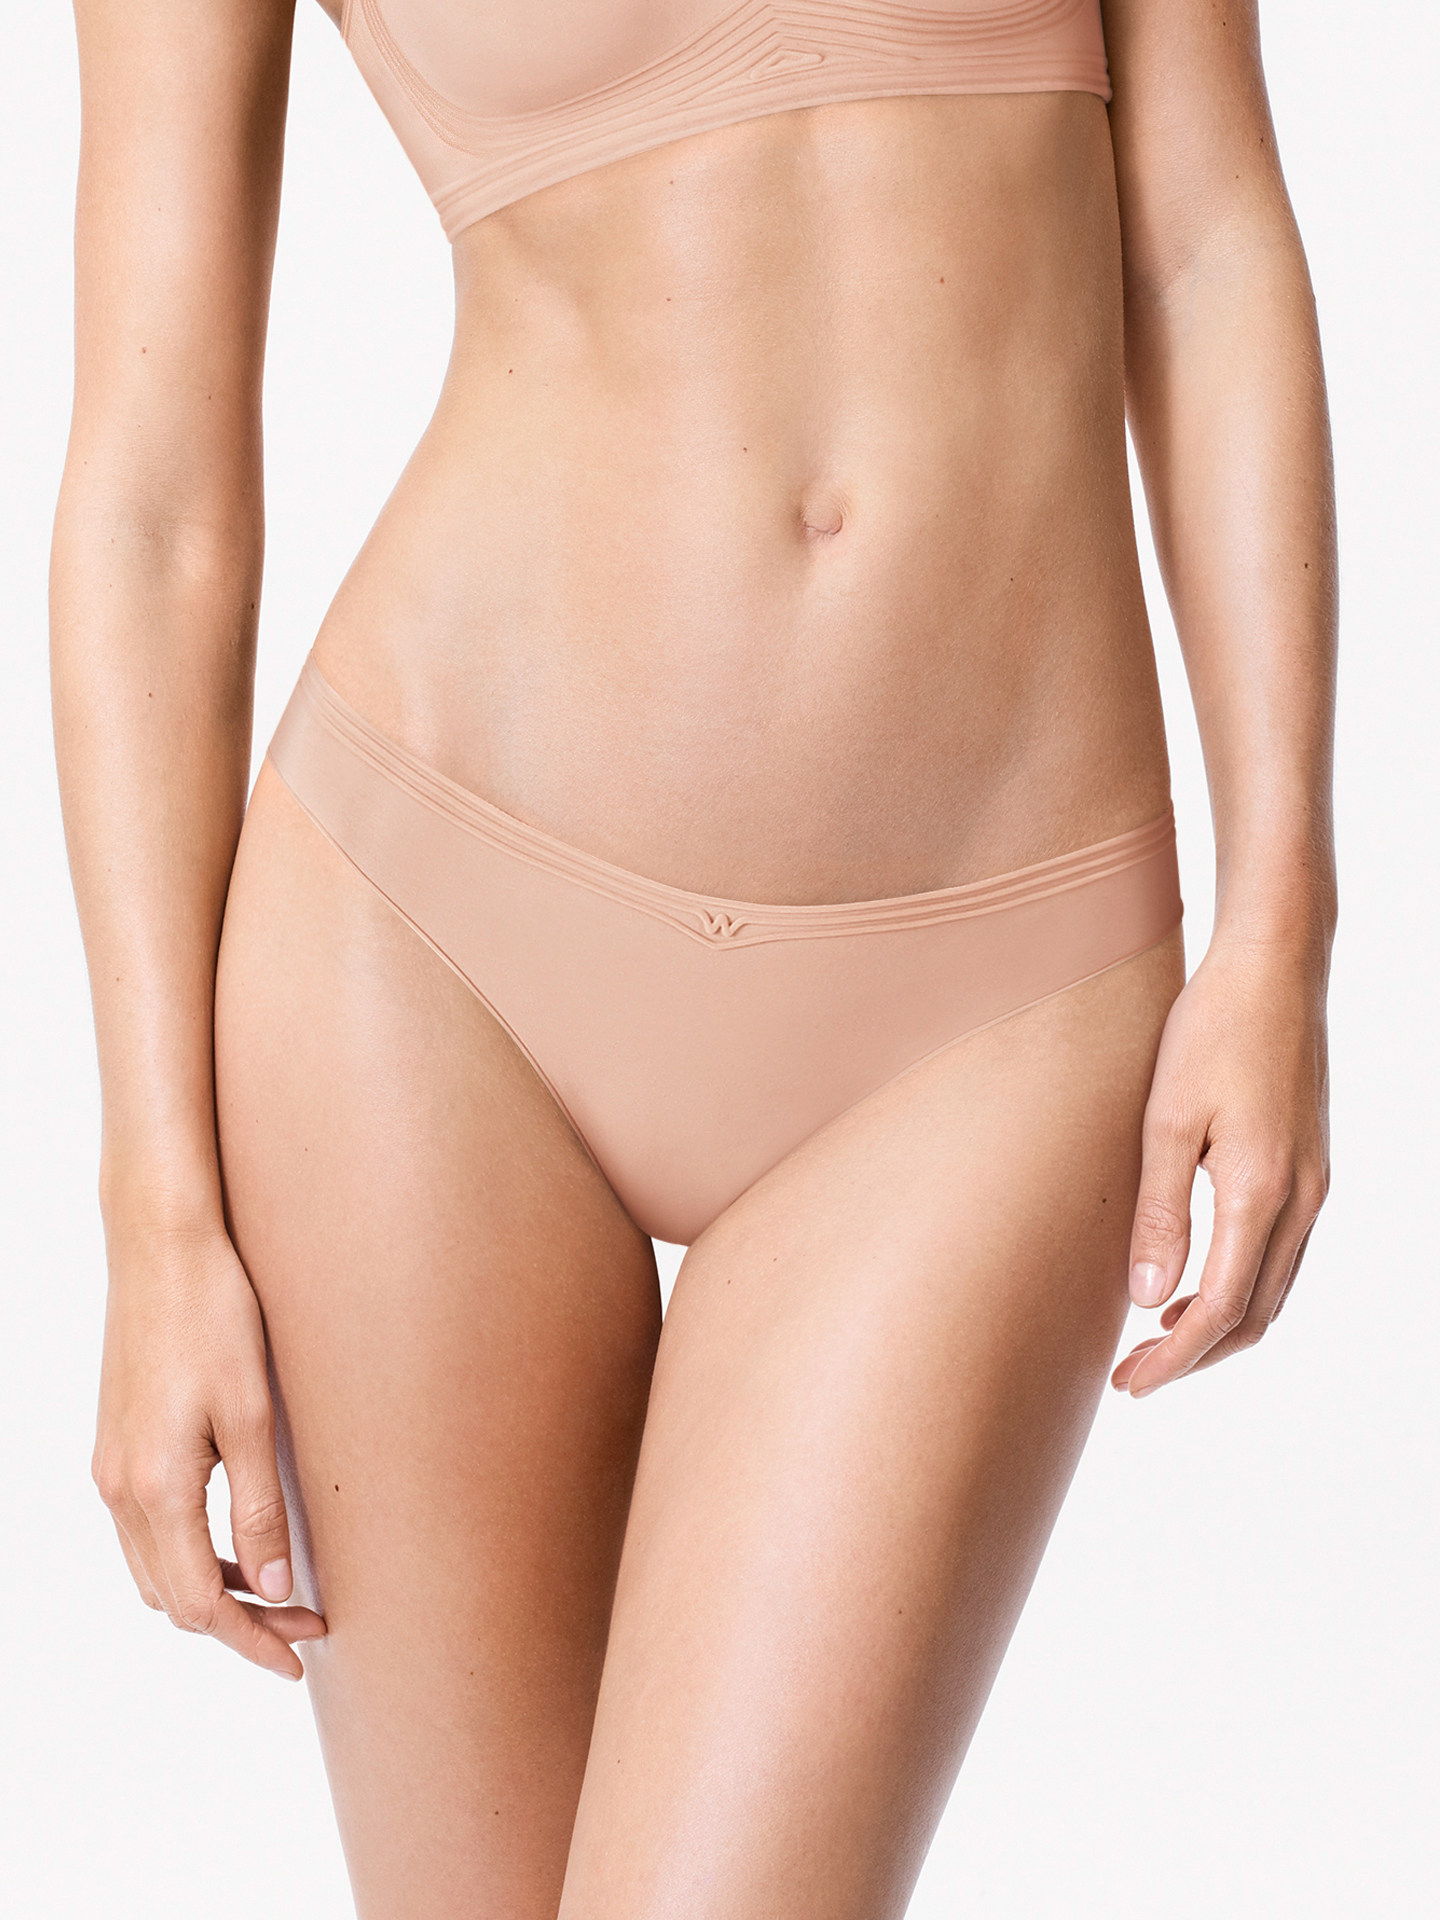 Innovative, feminine, minimalistic: The pleasantly soft Cotton Contour material, bonded side seams and flocked silicone strips, which take on the function of stretchy elastic, make this string an extra-comfortable, must-have item.